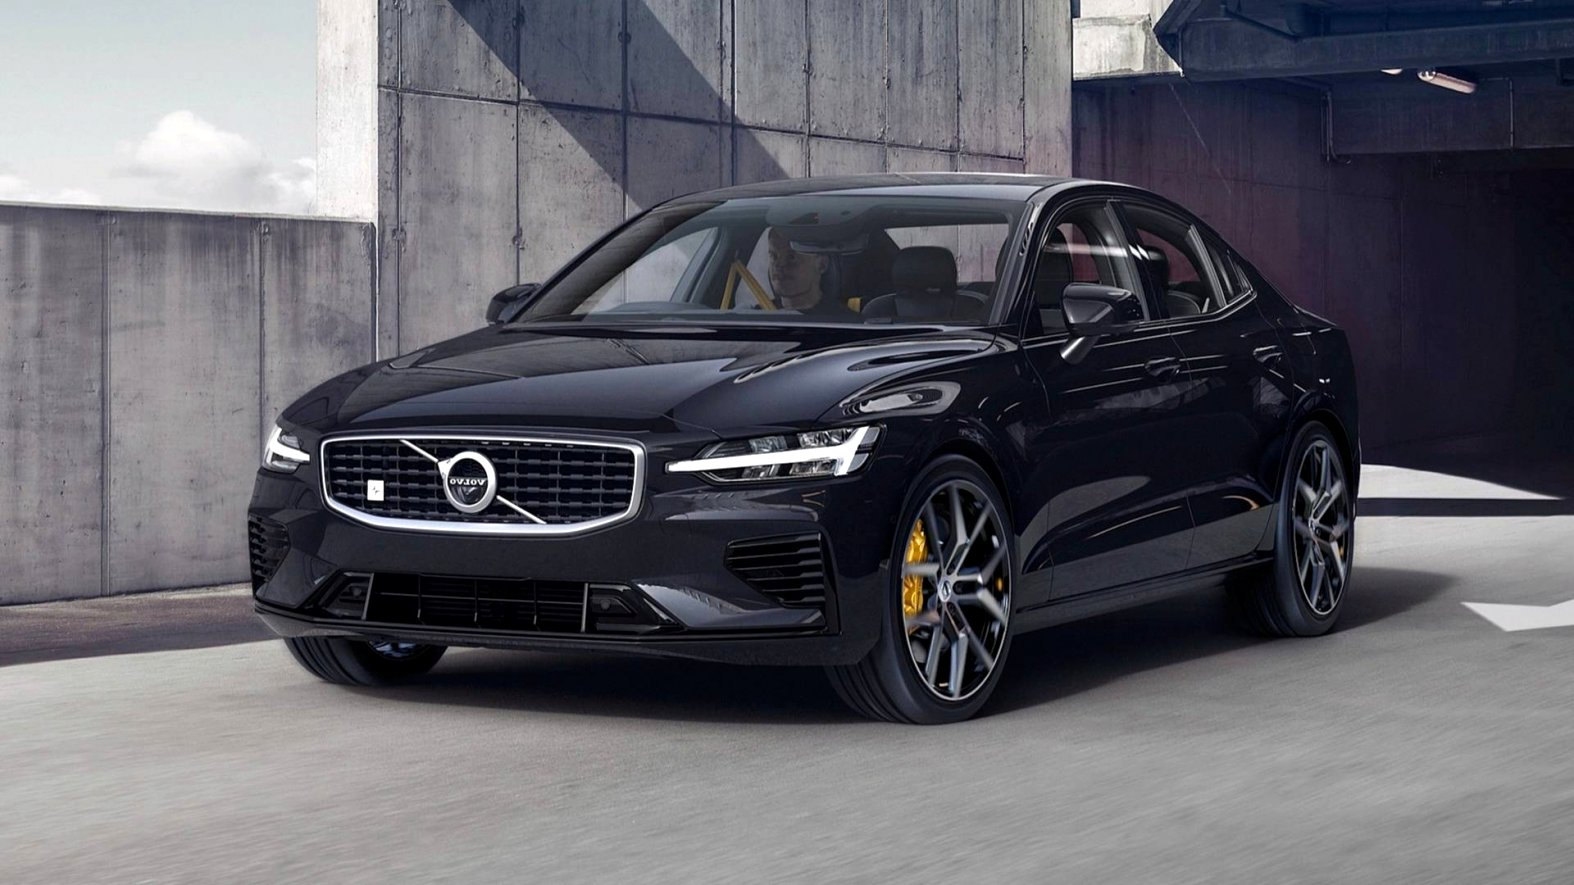 2020 used volvo s60 Release Date